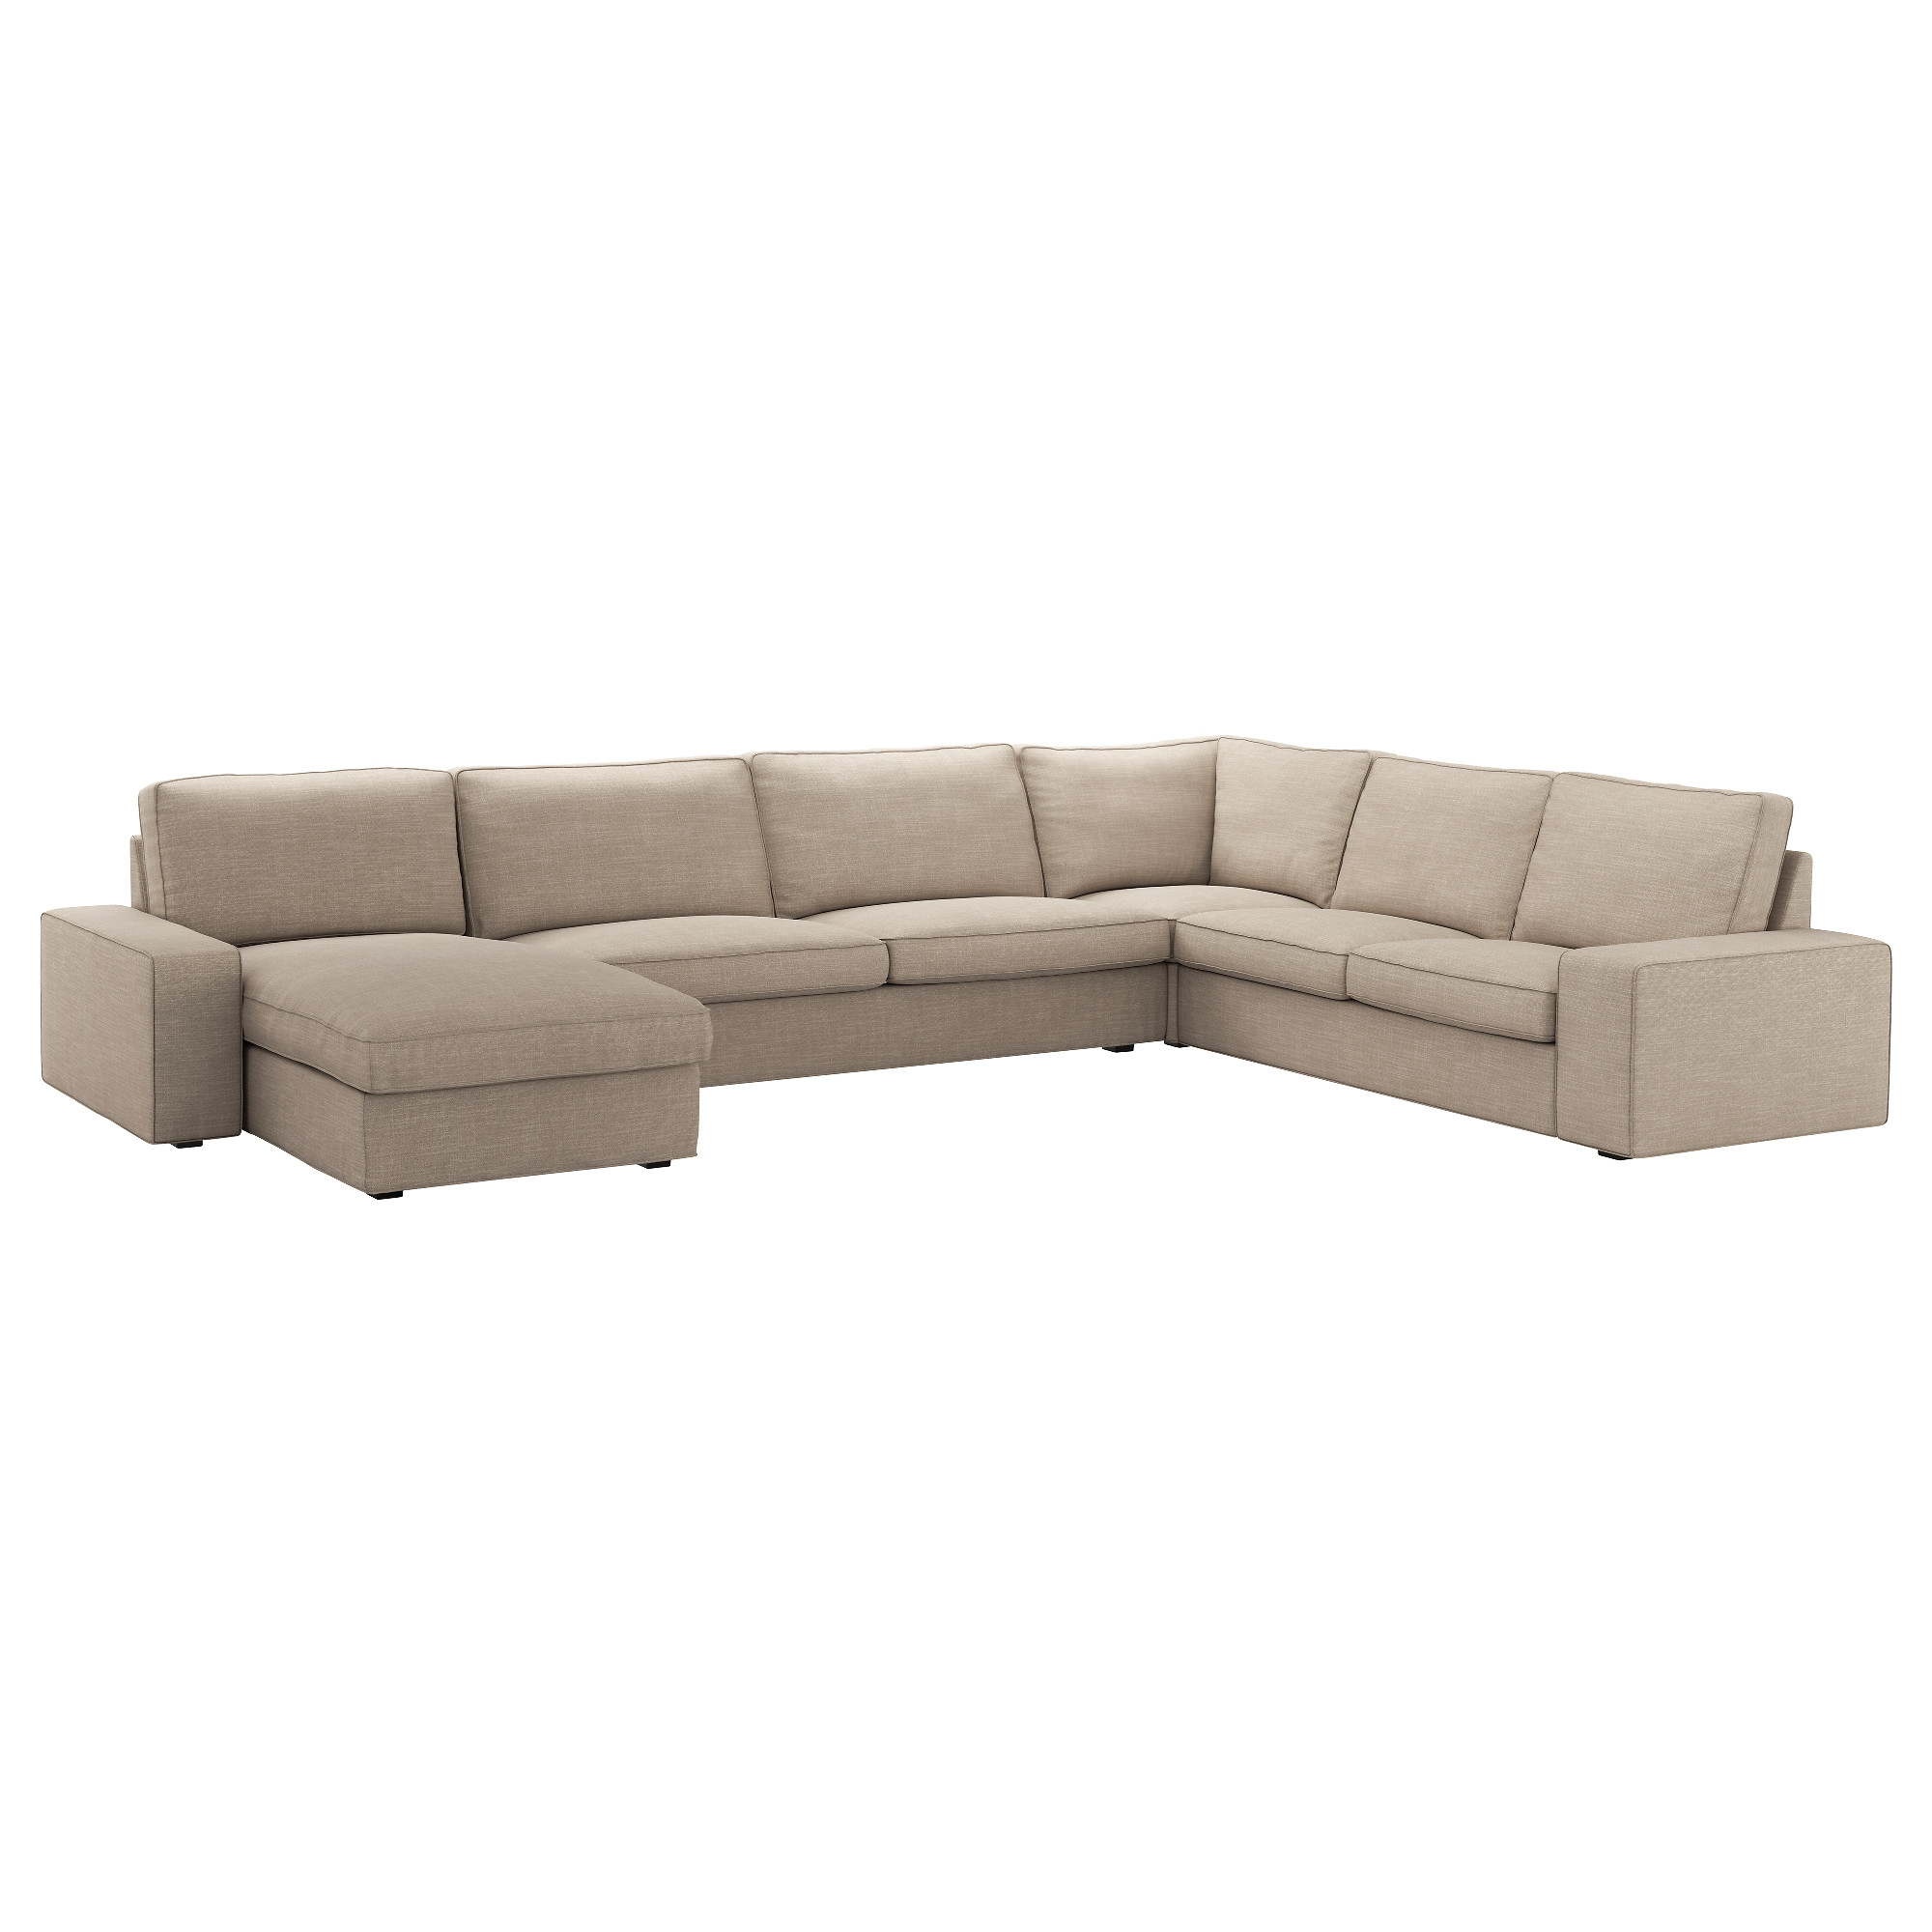 Sofas Beige 9ddf Kivik sofa 6 Seats with Chaise Longue with Hillared Beige Cover